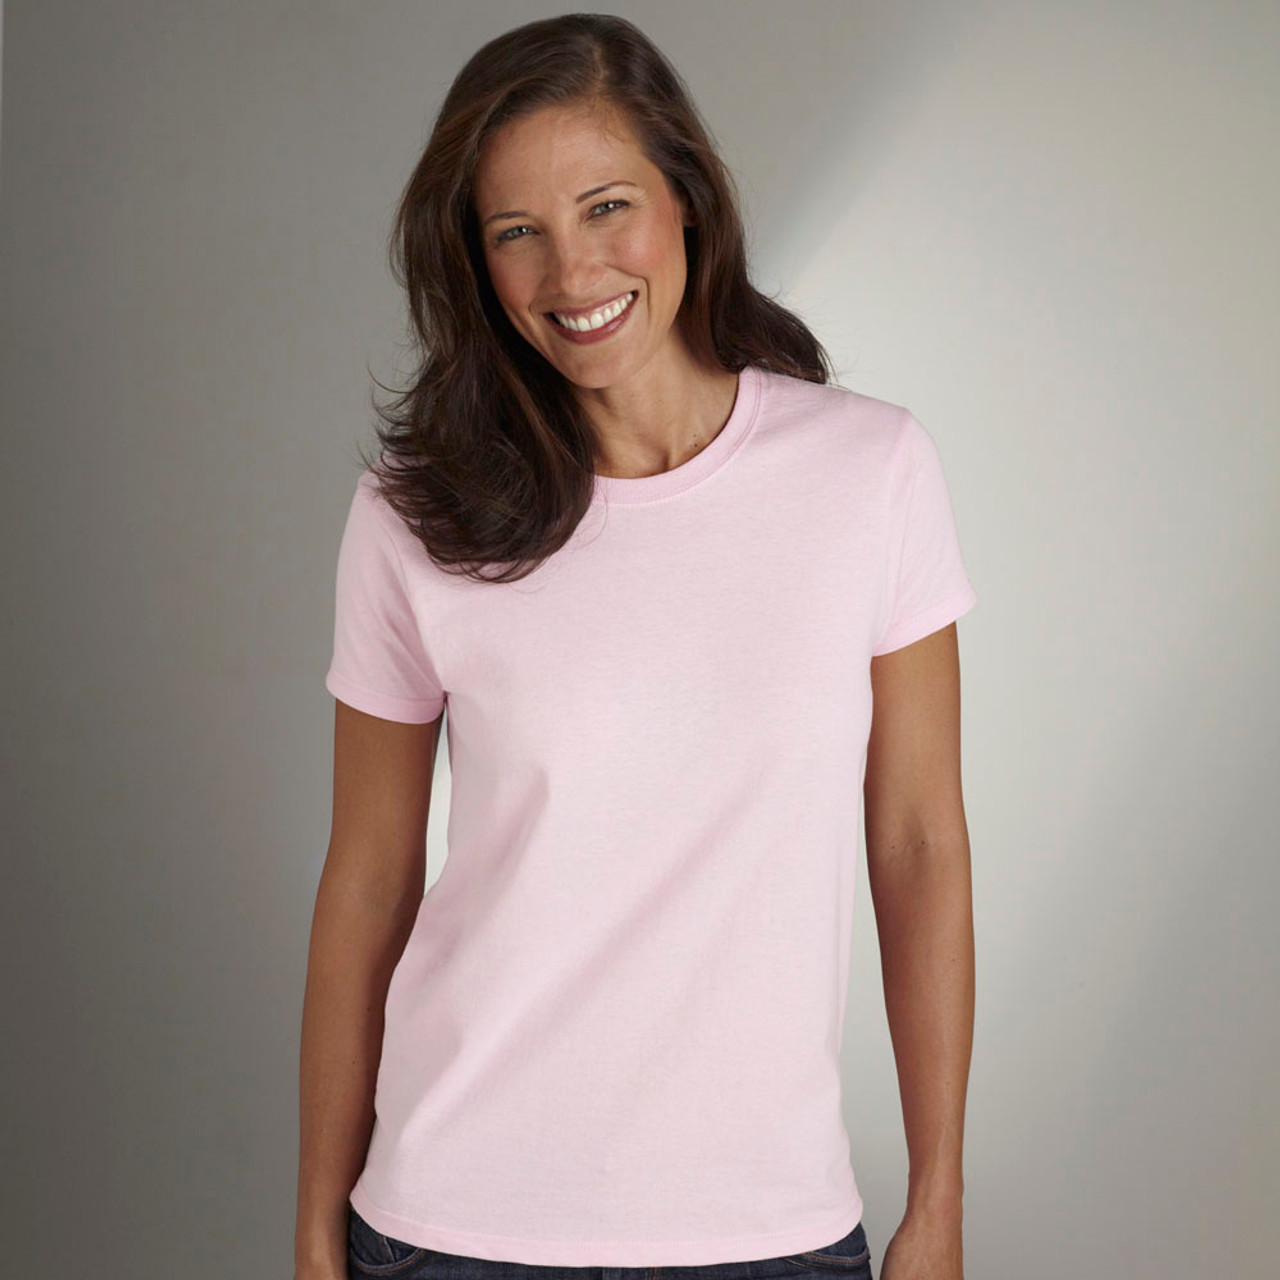 3a878a5e9b5 Gildan 2000L - Ladies' Ultra Cotton T-Shirt